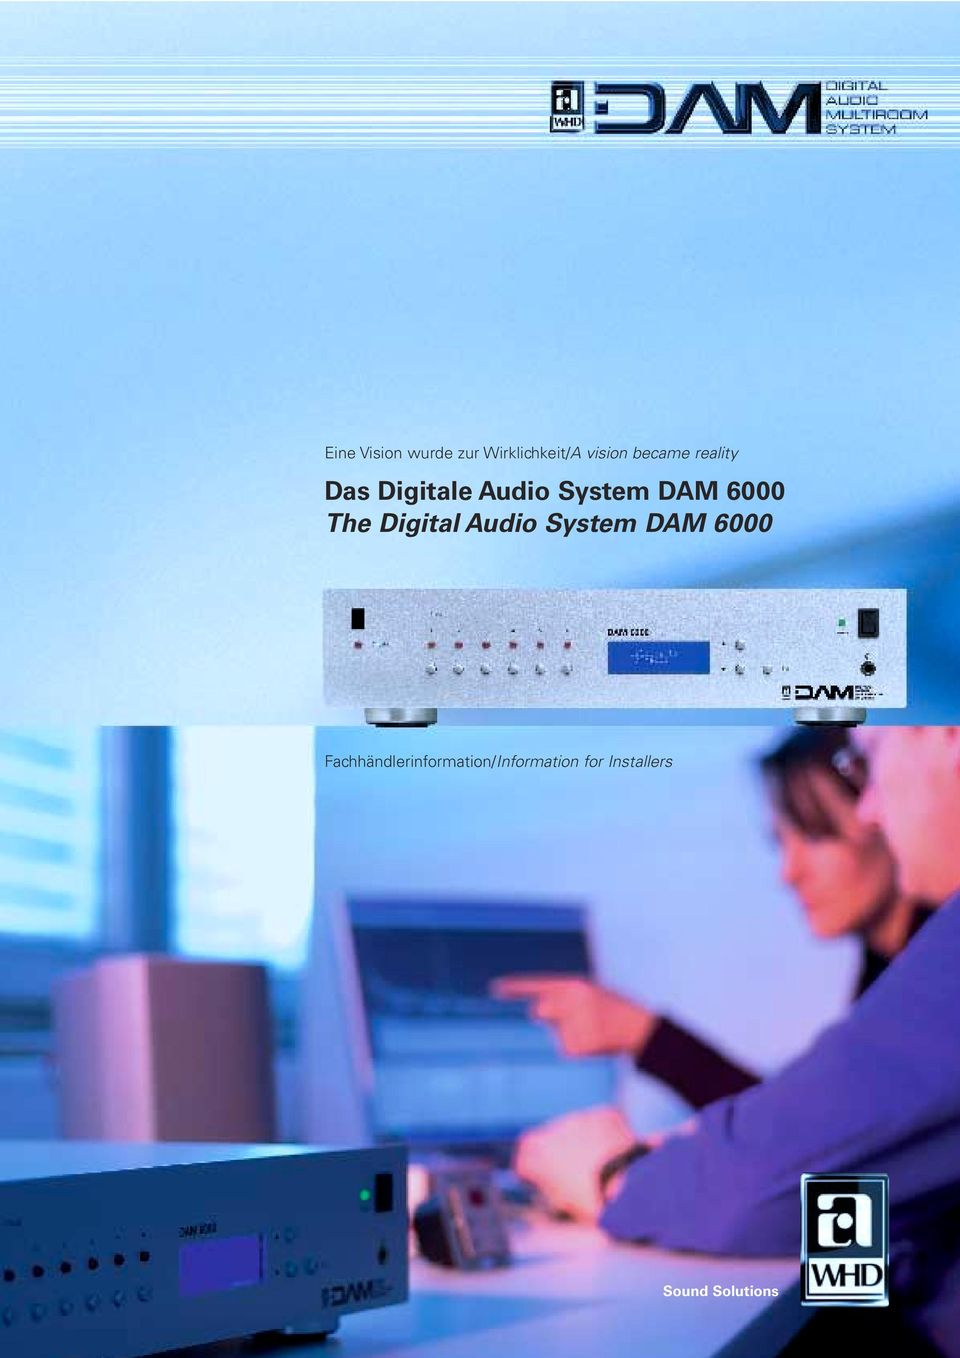 6000 The Digital Audio System DAM 6000